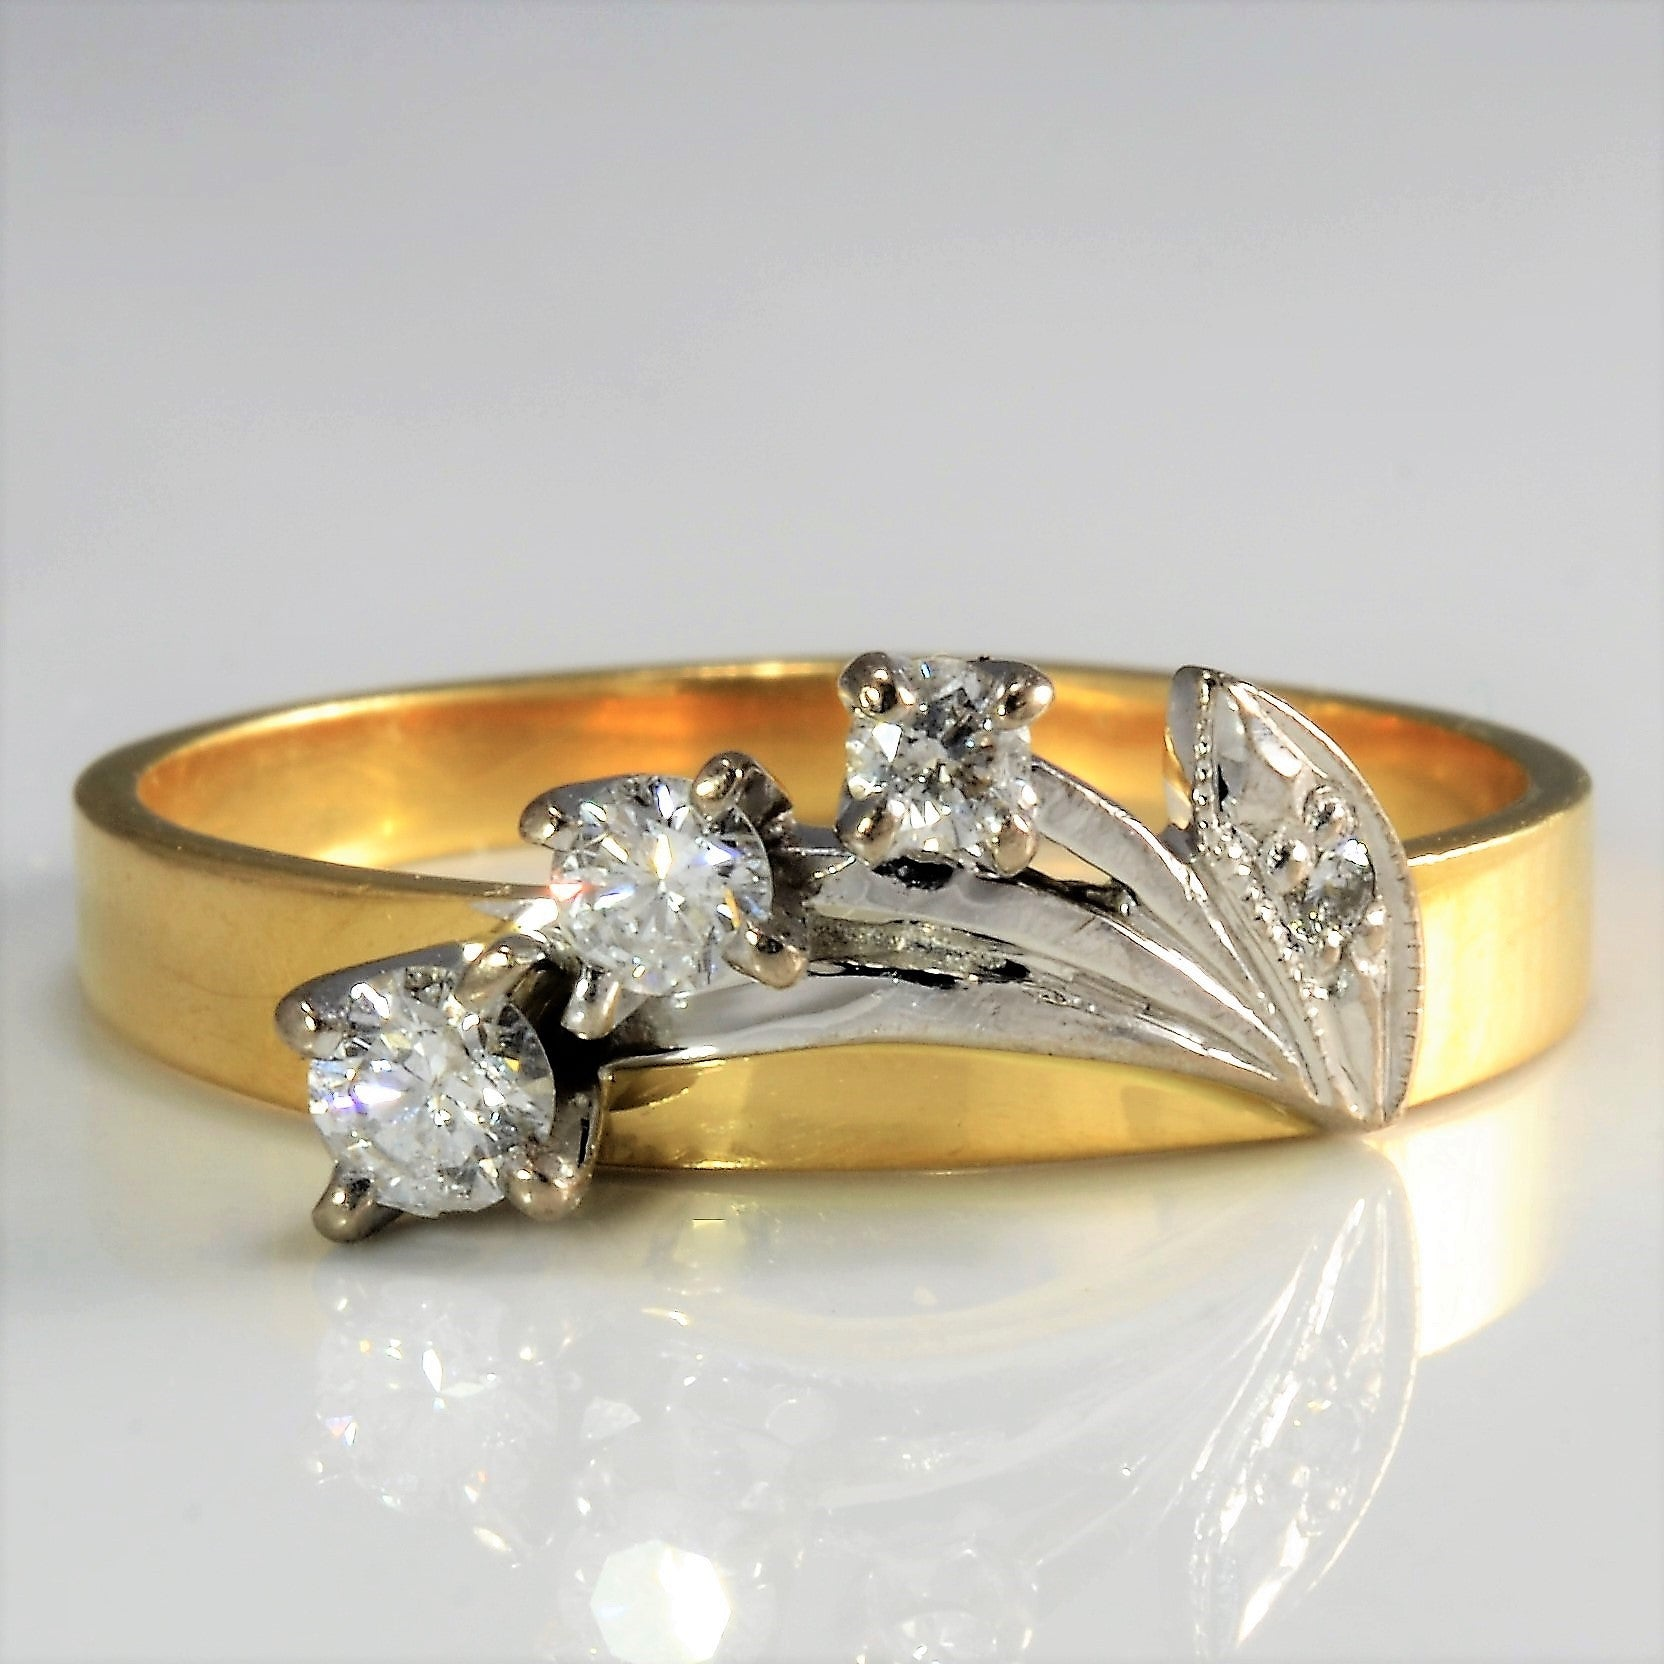 Unique Floral Pattern Diamond Ring | 0.22 ctw, 8.25 |